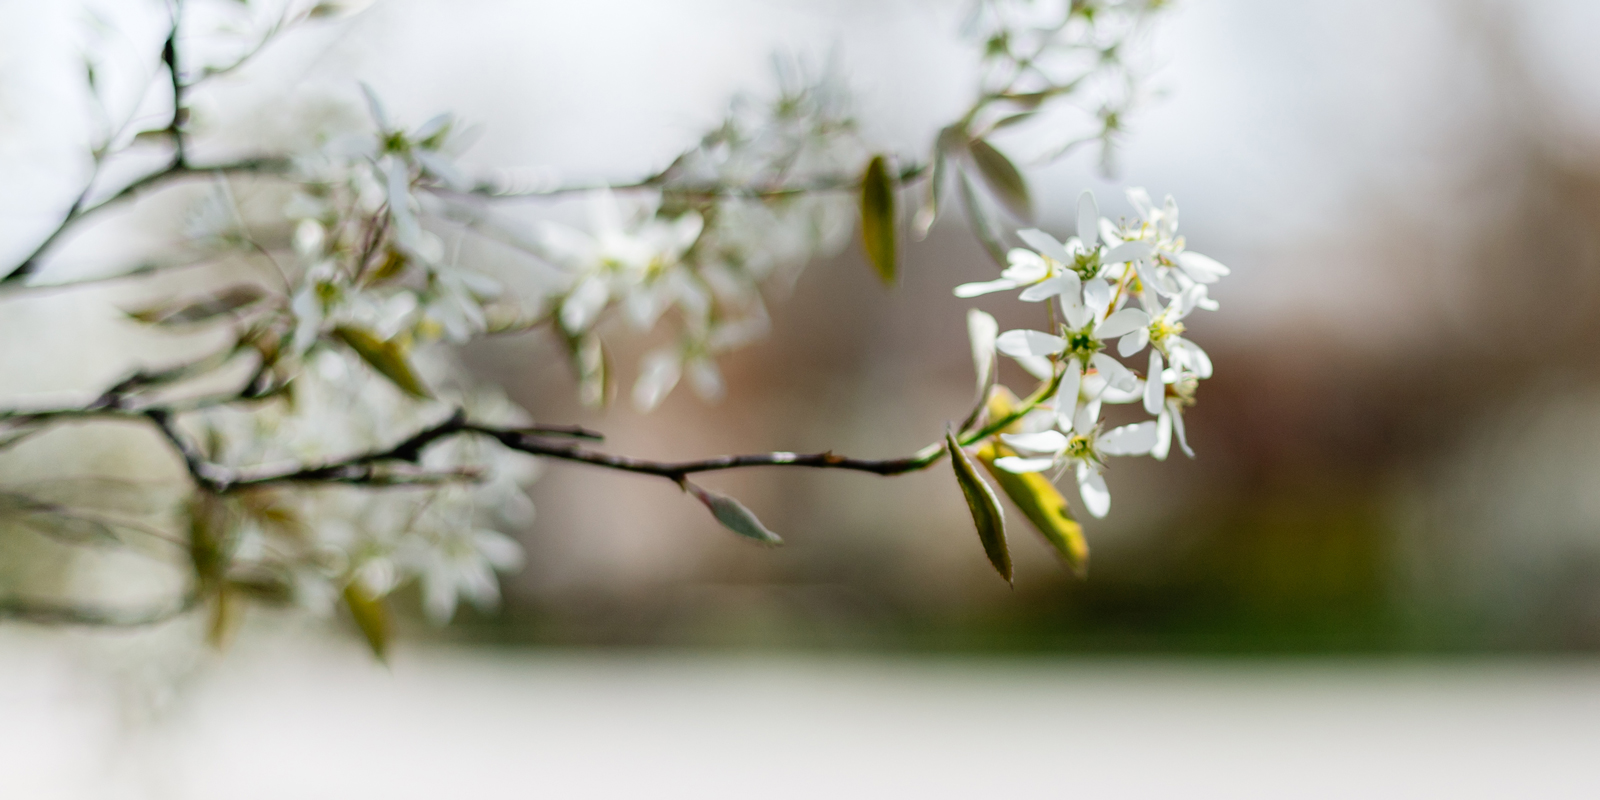 Surprised by Hope Blog Cover Photo, Flowers on Campus